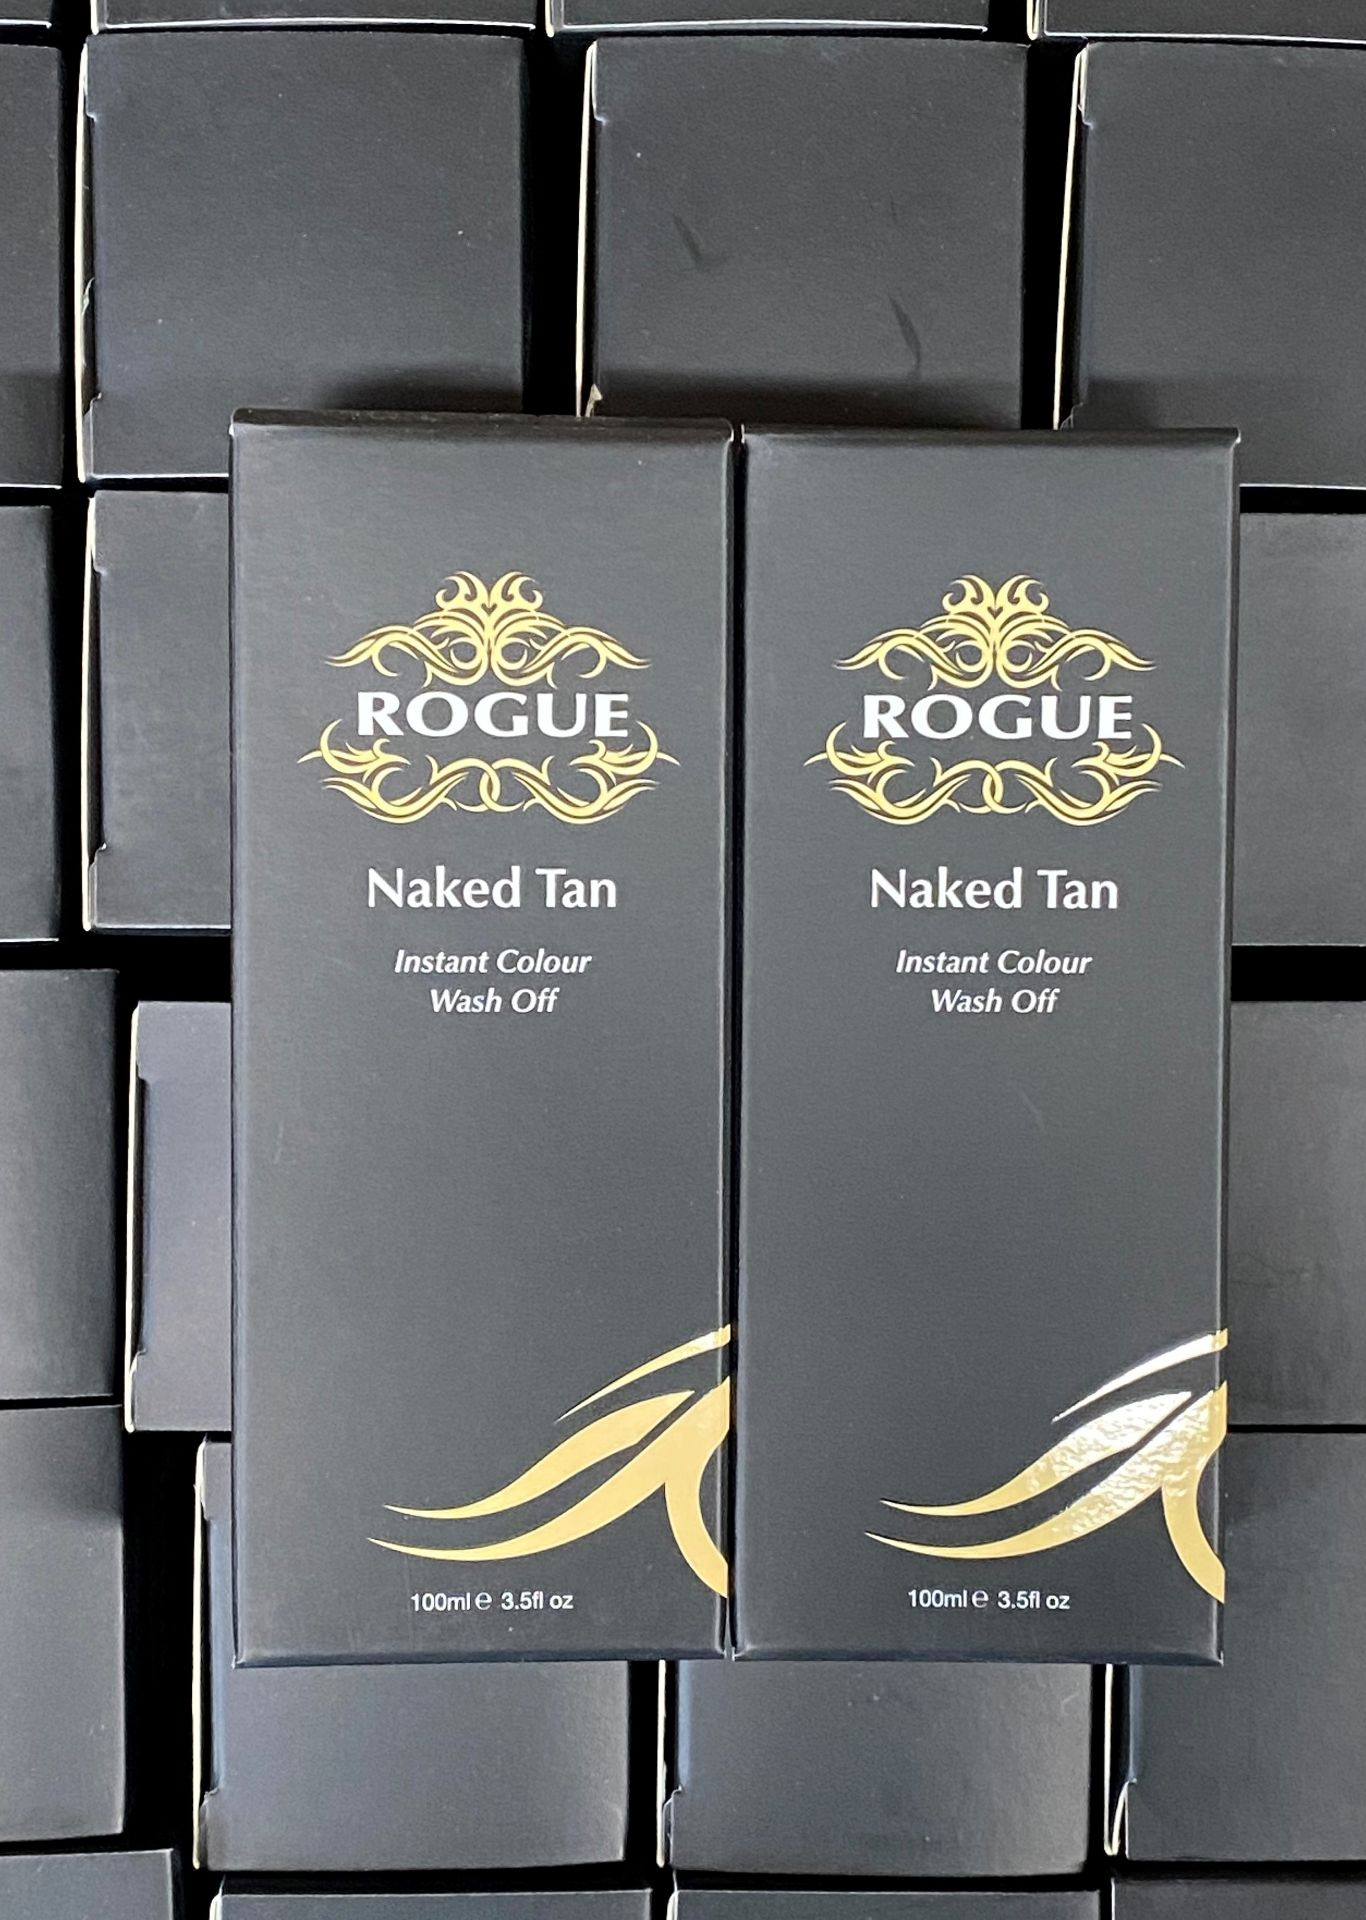 80 x Rogue Naked Tan 100ml tubes (Counts are approximate)